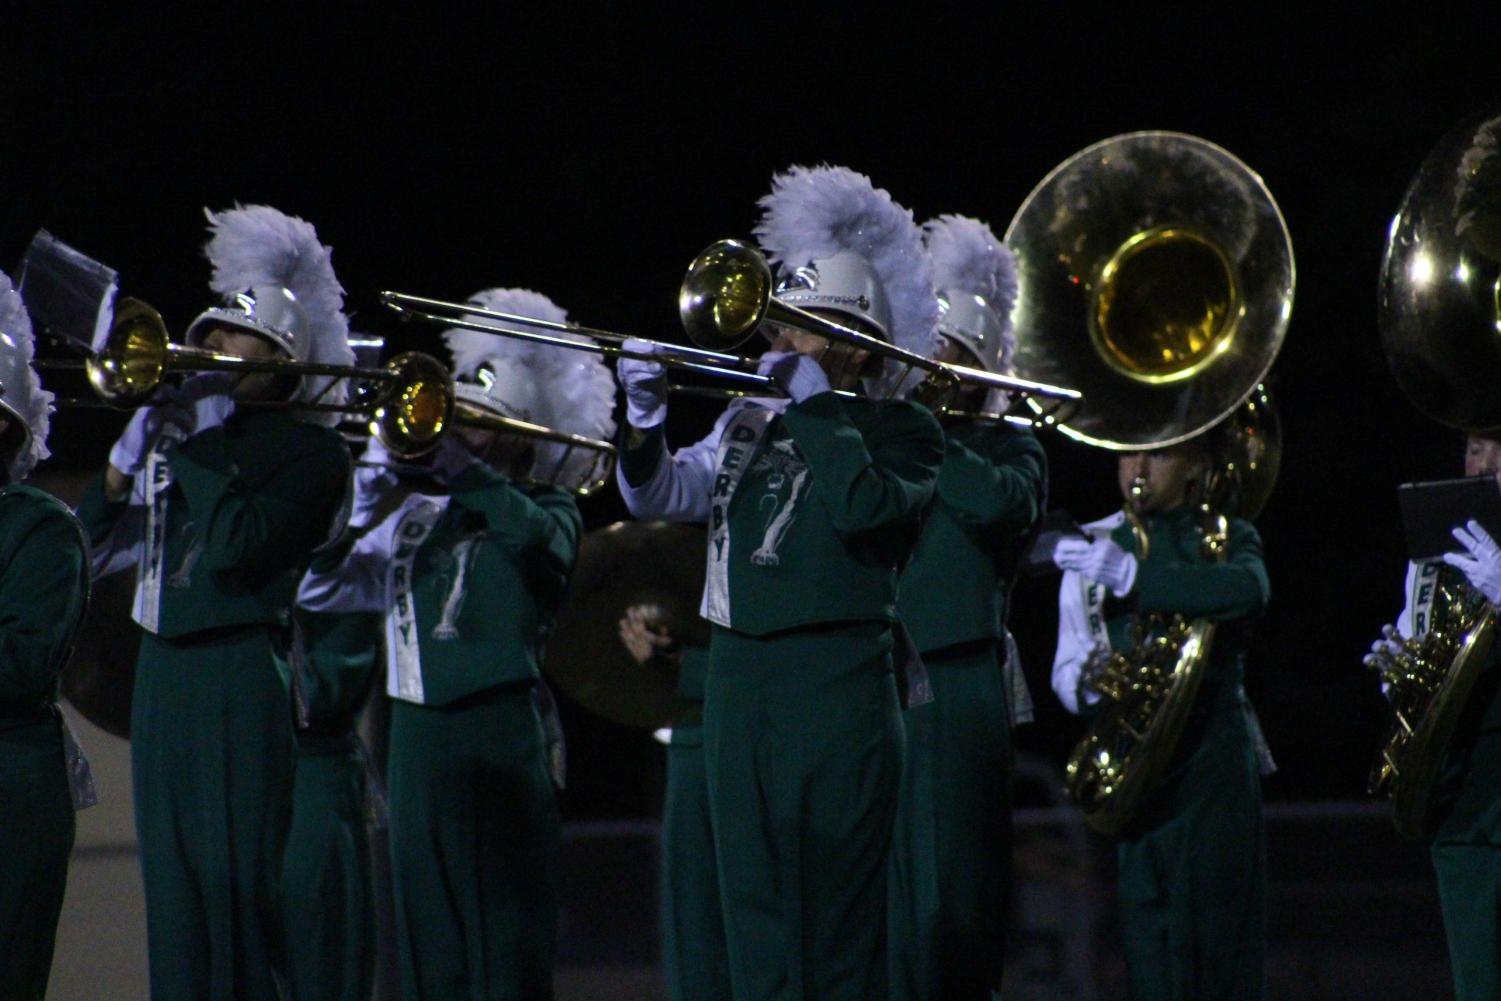 Trombone+players+in+the+marching+band+perform+at+halftime